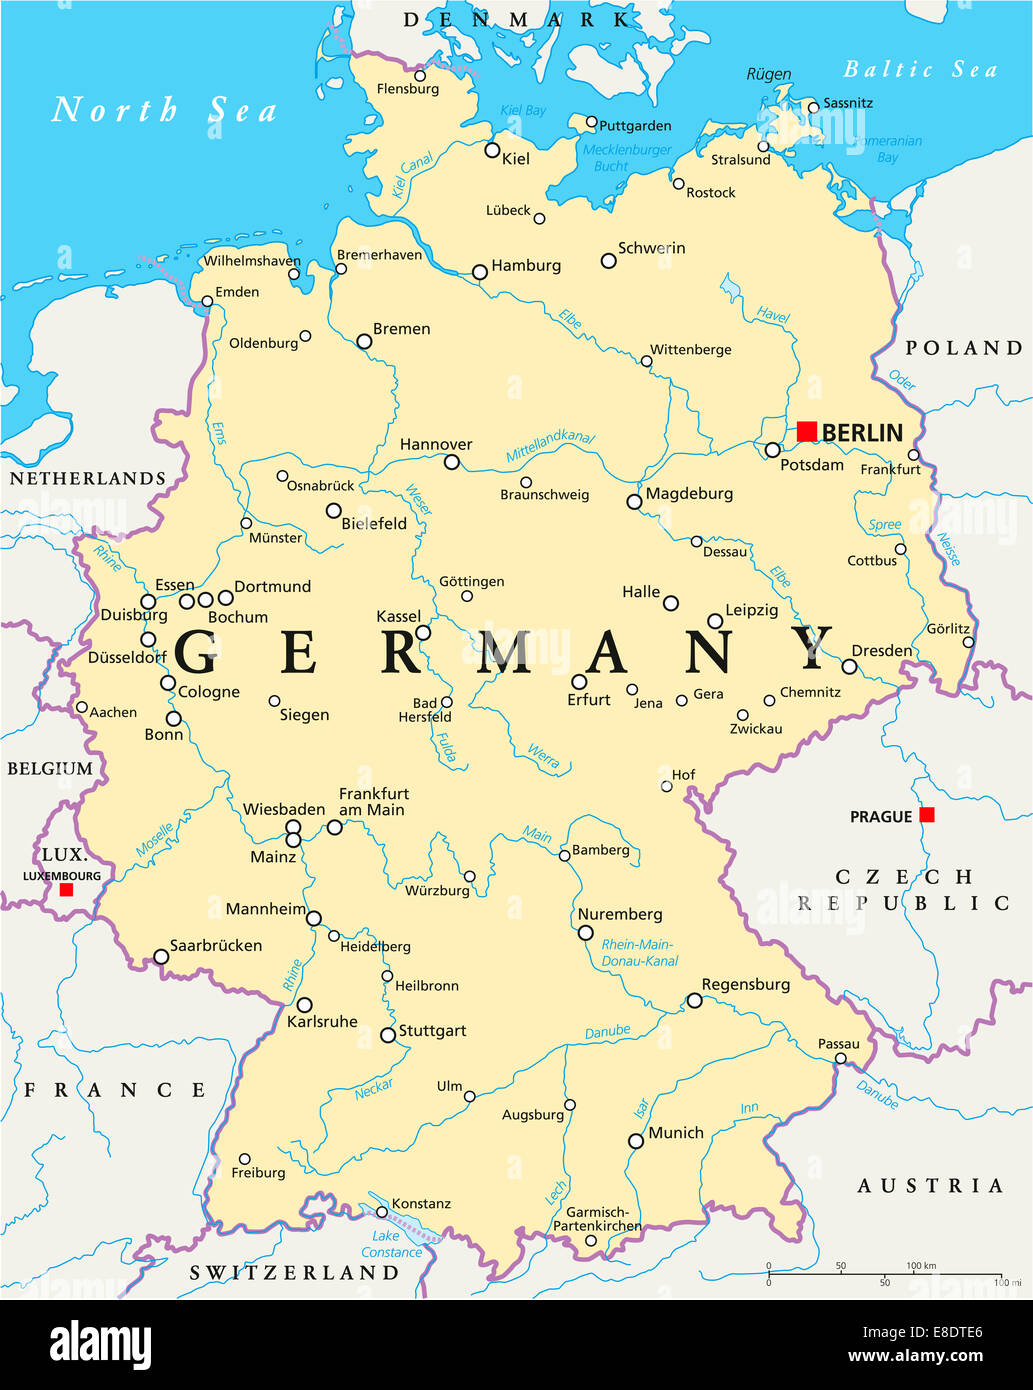 Germany Political Map With Capital Berlin National Borders Most - Germany map of rivers